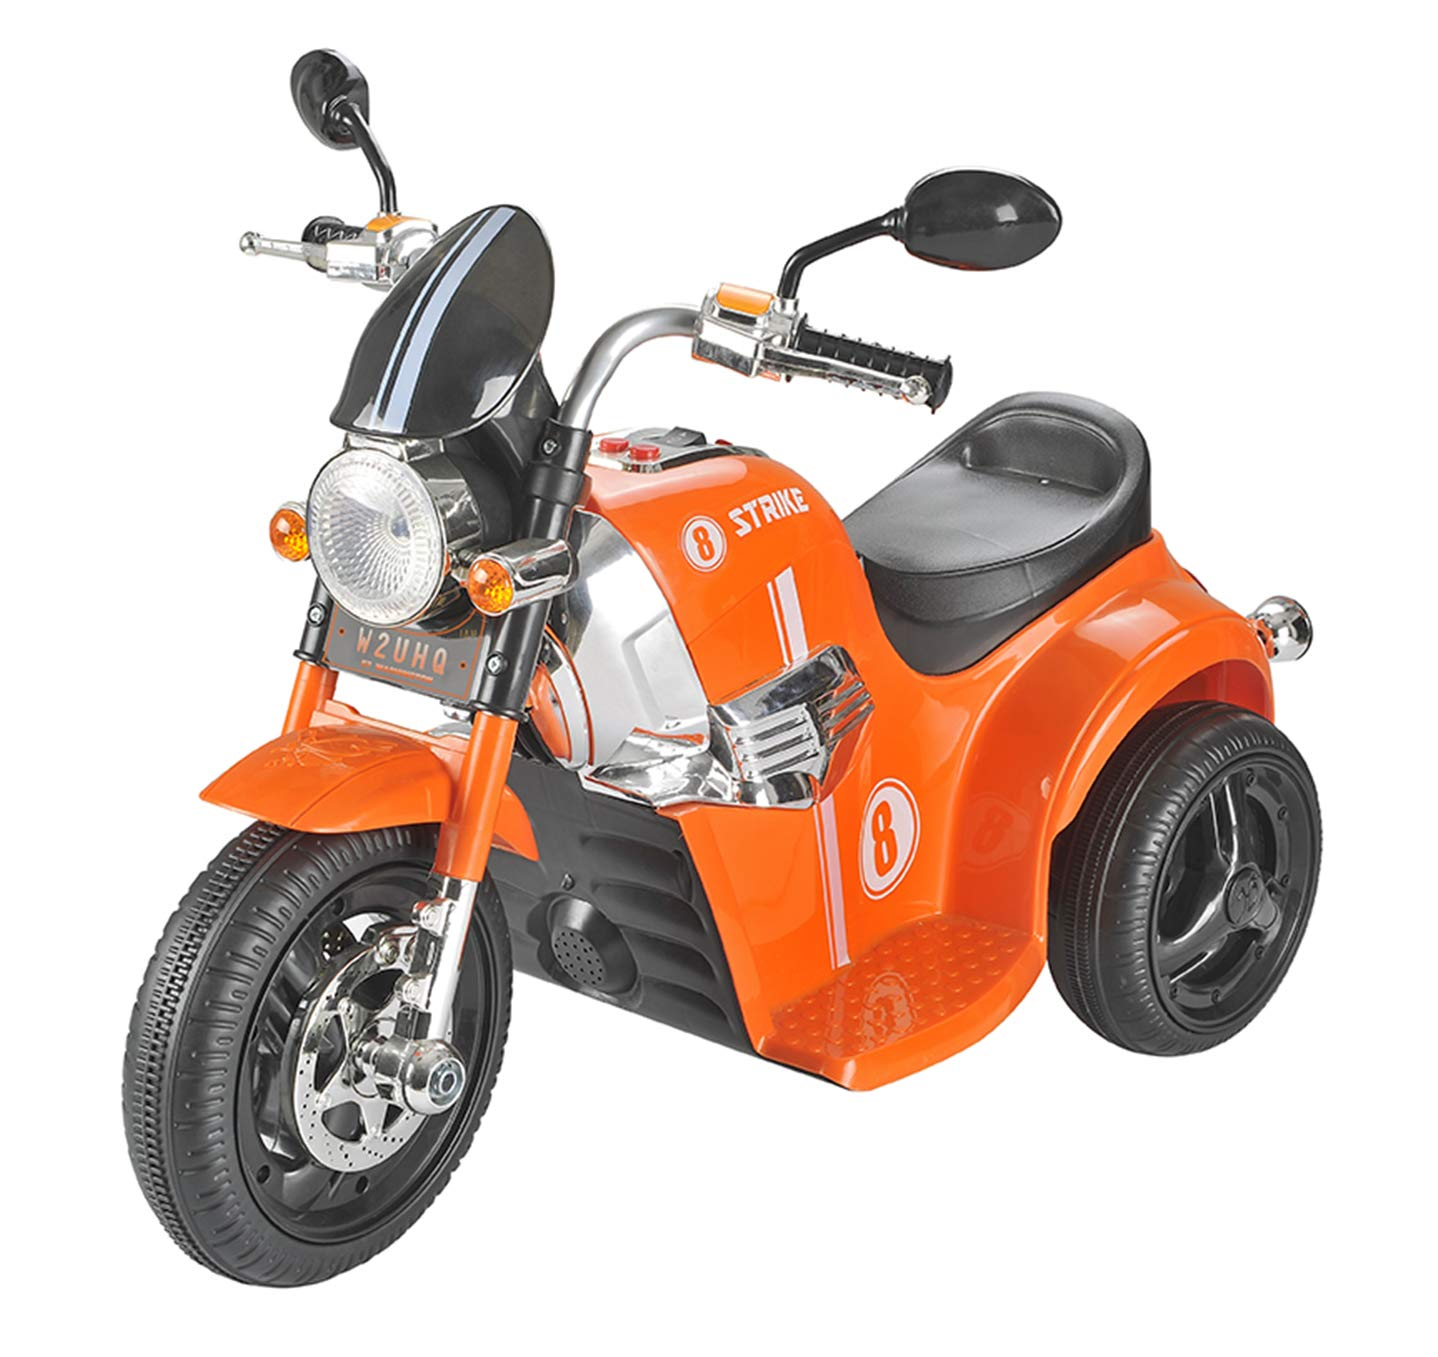 Toyhouse Samurai Strike 8 Rechargeable Battery Operated Bike for Kids review